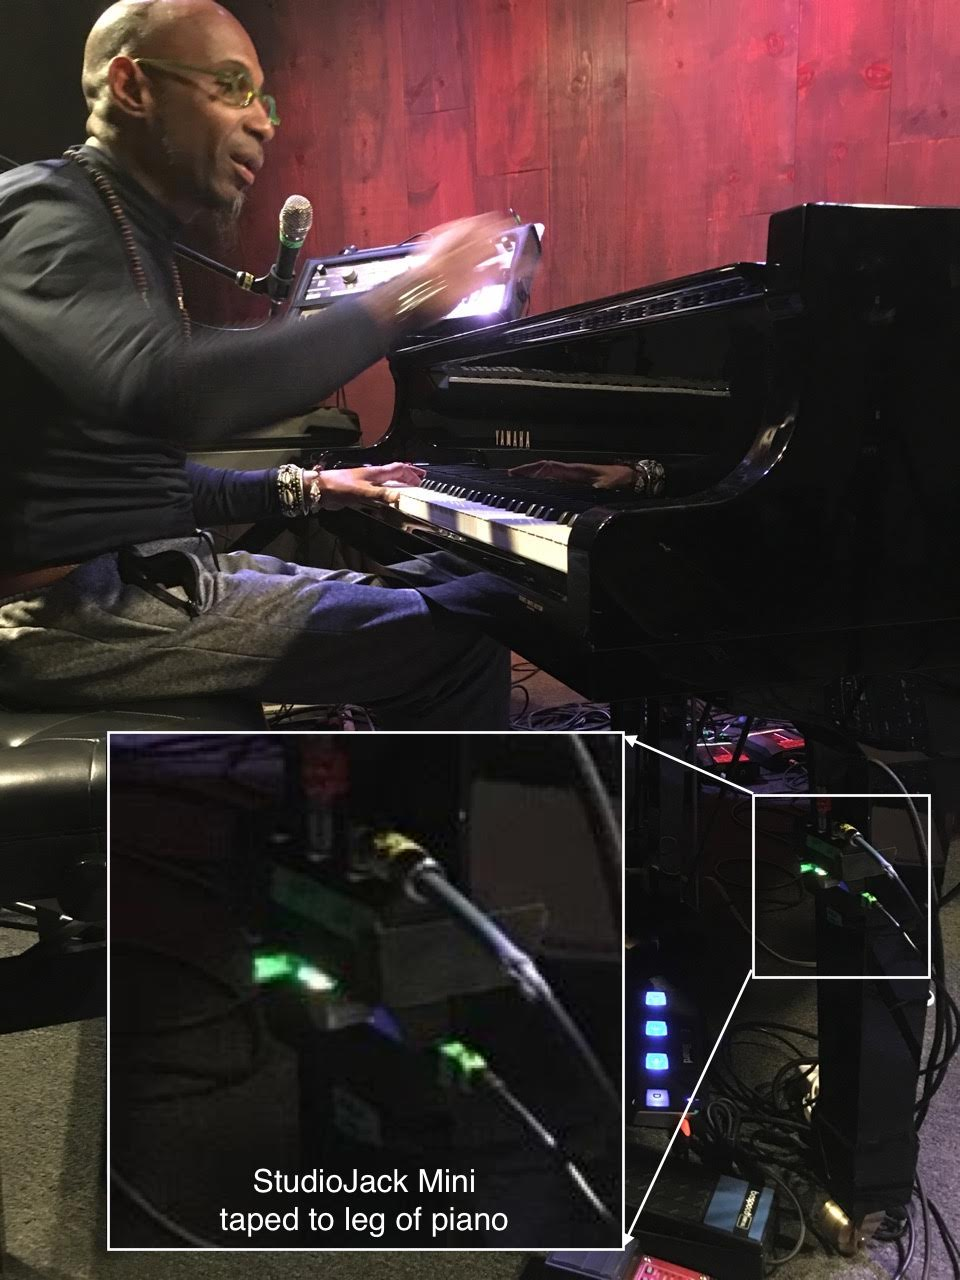 Omar Sosa Piano Setup with StudioJack Mini Audio Interface